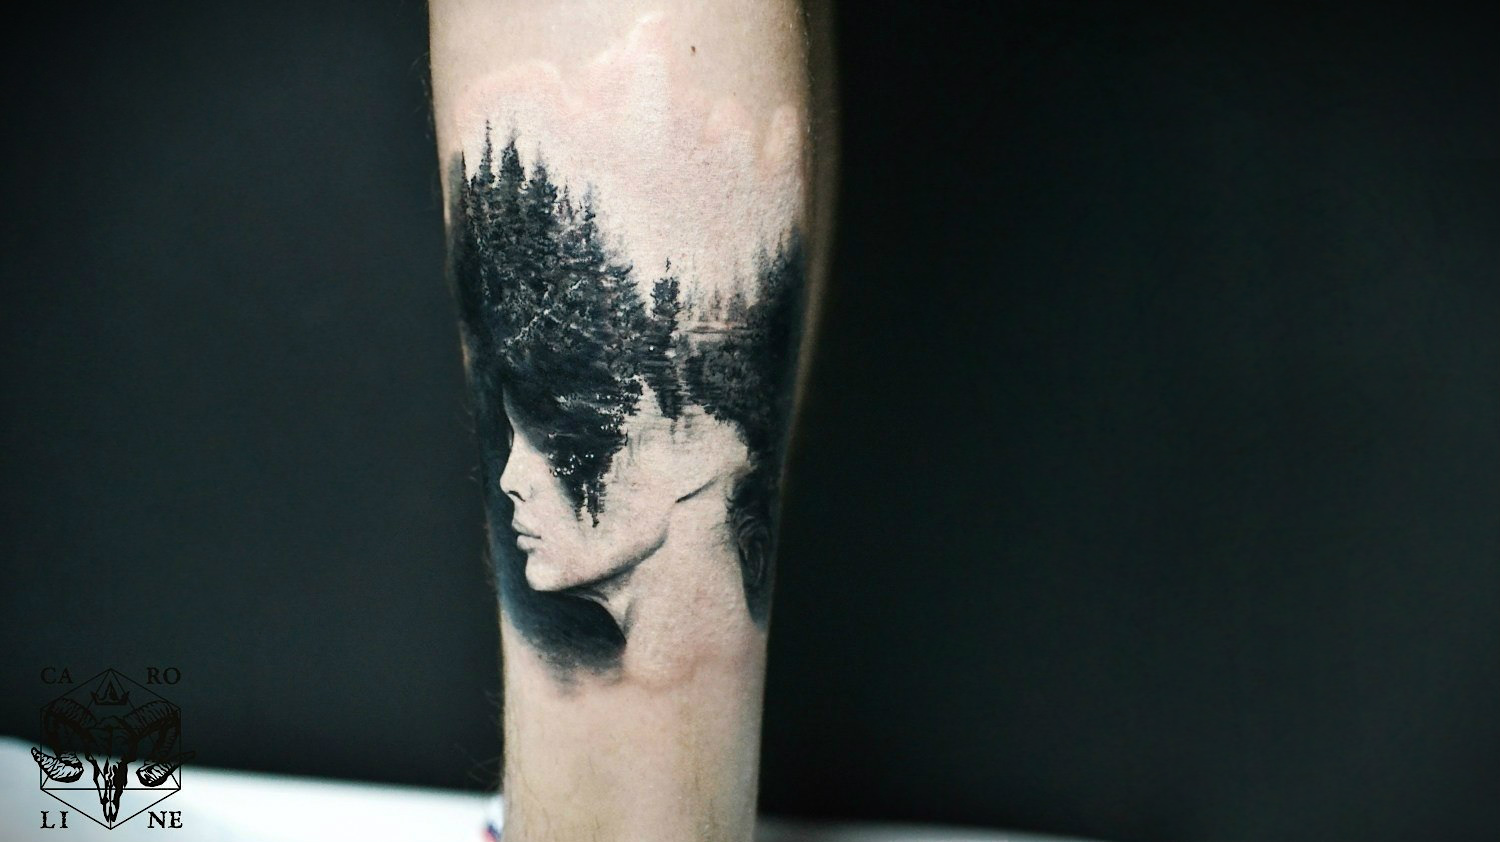 Antonio Mora double exposure tattoo by Caroline Friedmann